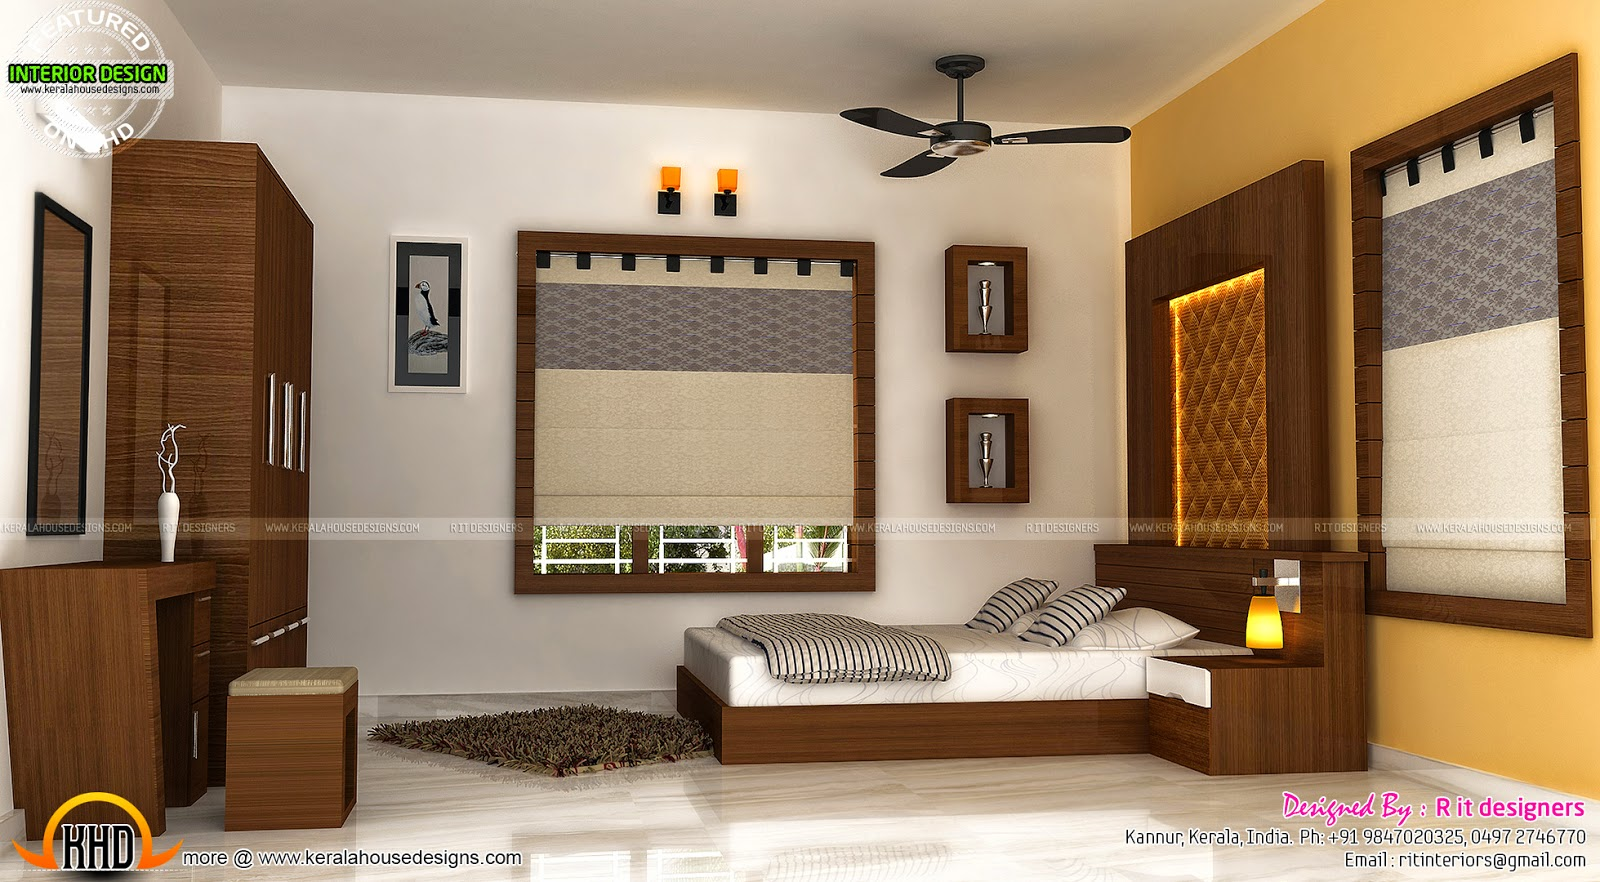 Staircase bedroom dining interiors kerala home design for Kerala home interior designs photos